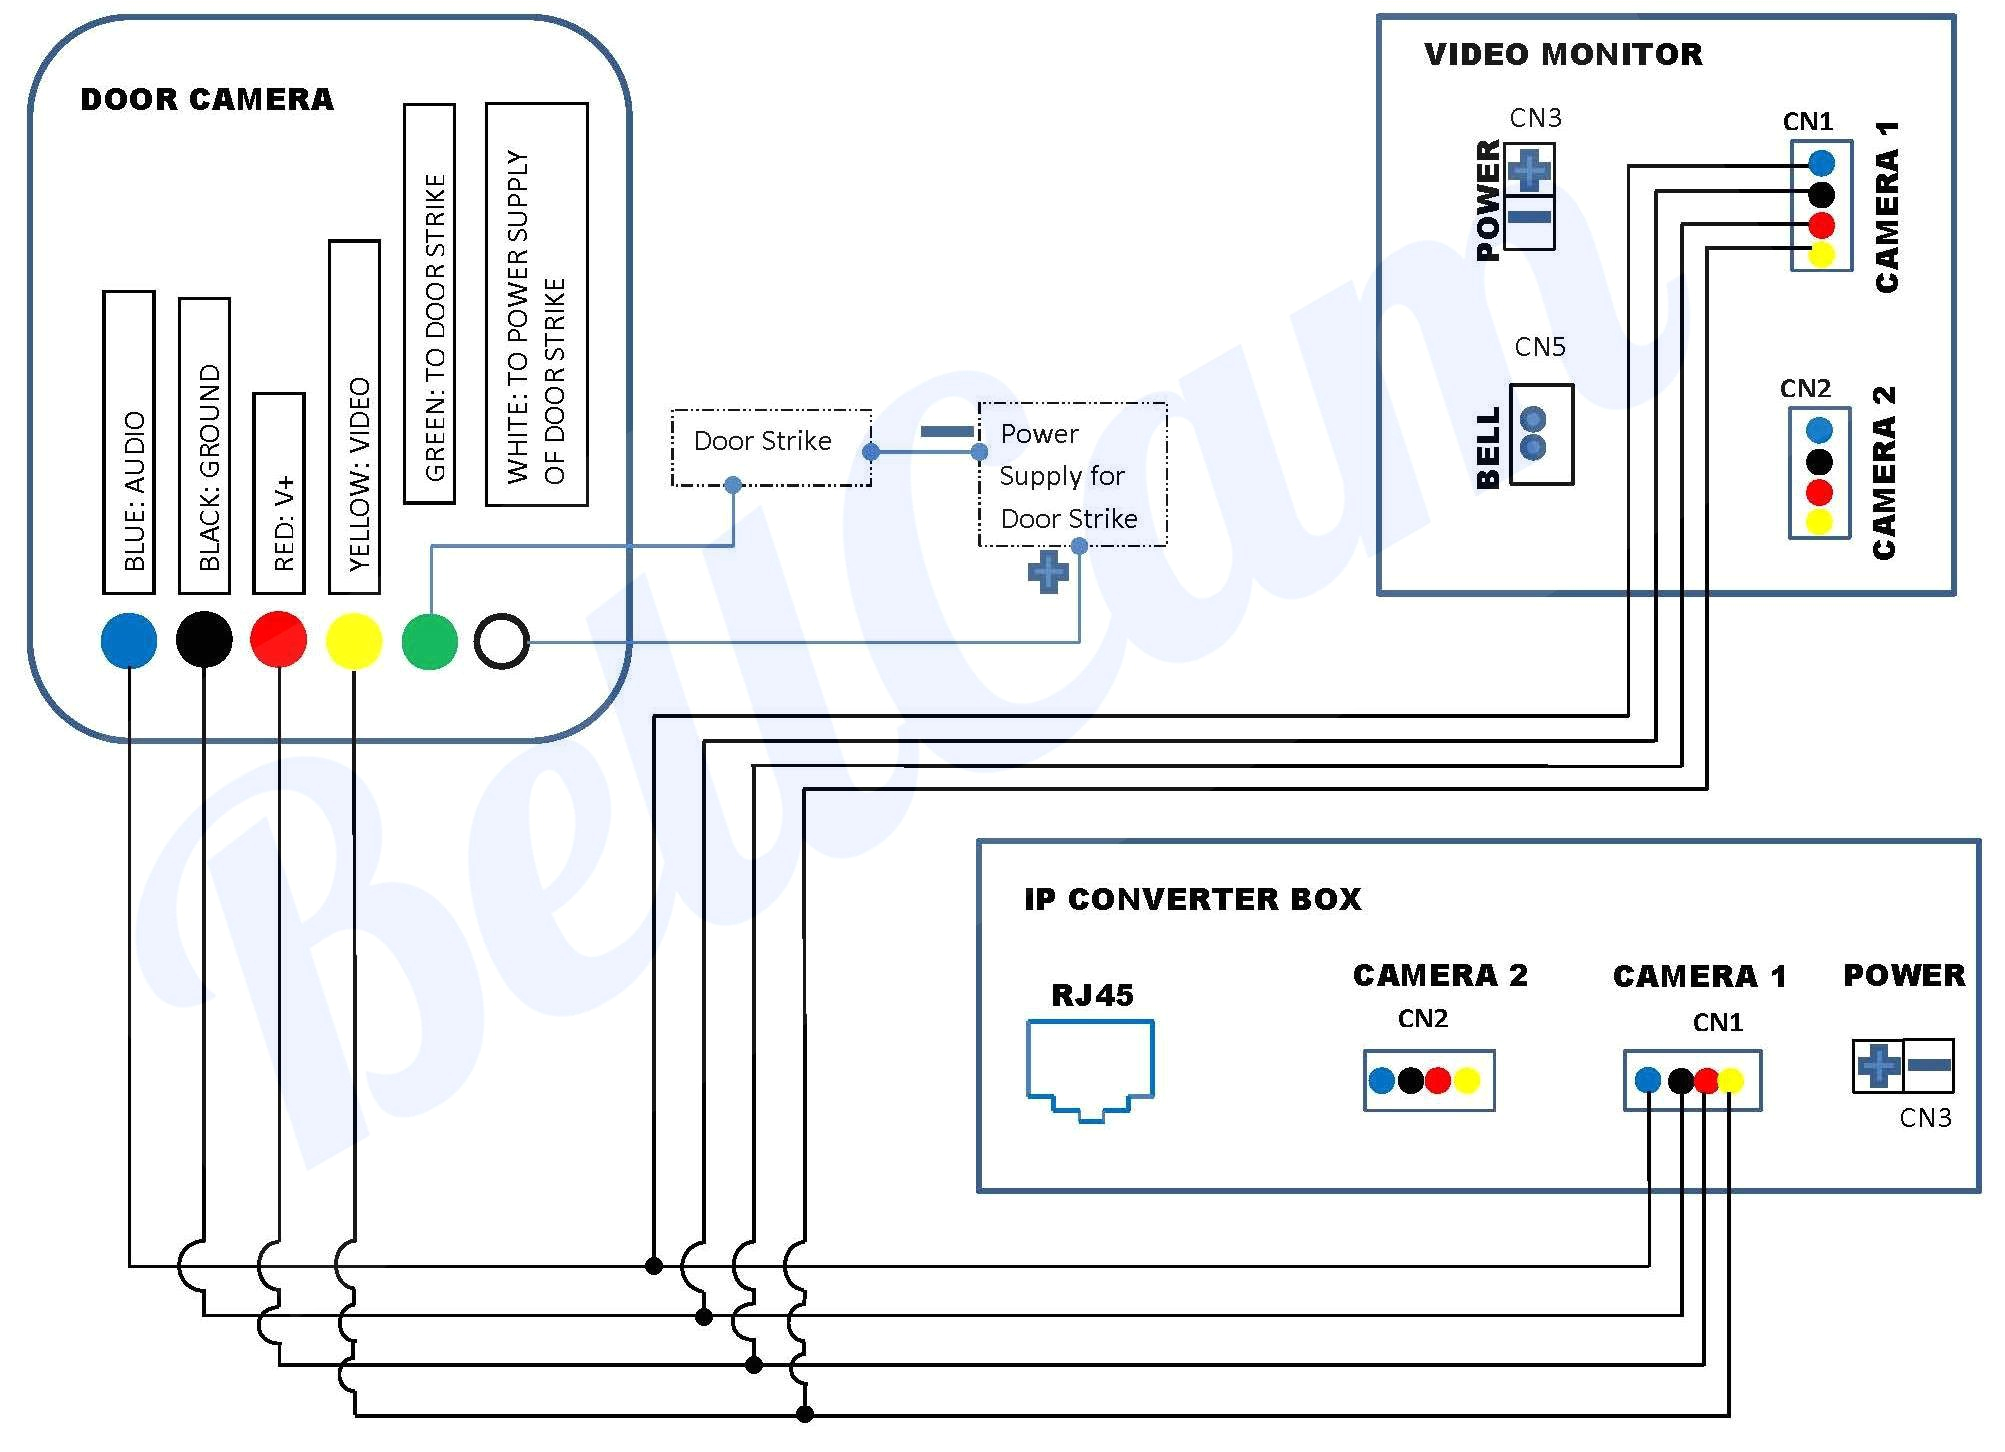 network line cable markers 10 colors organizers 0004in other wiring network line cable markers 10 colors organizers 0004in other wiring